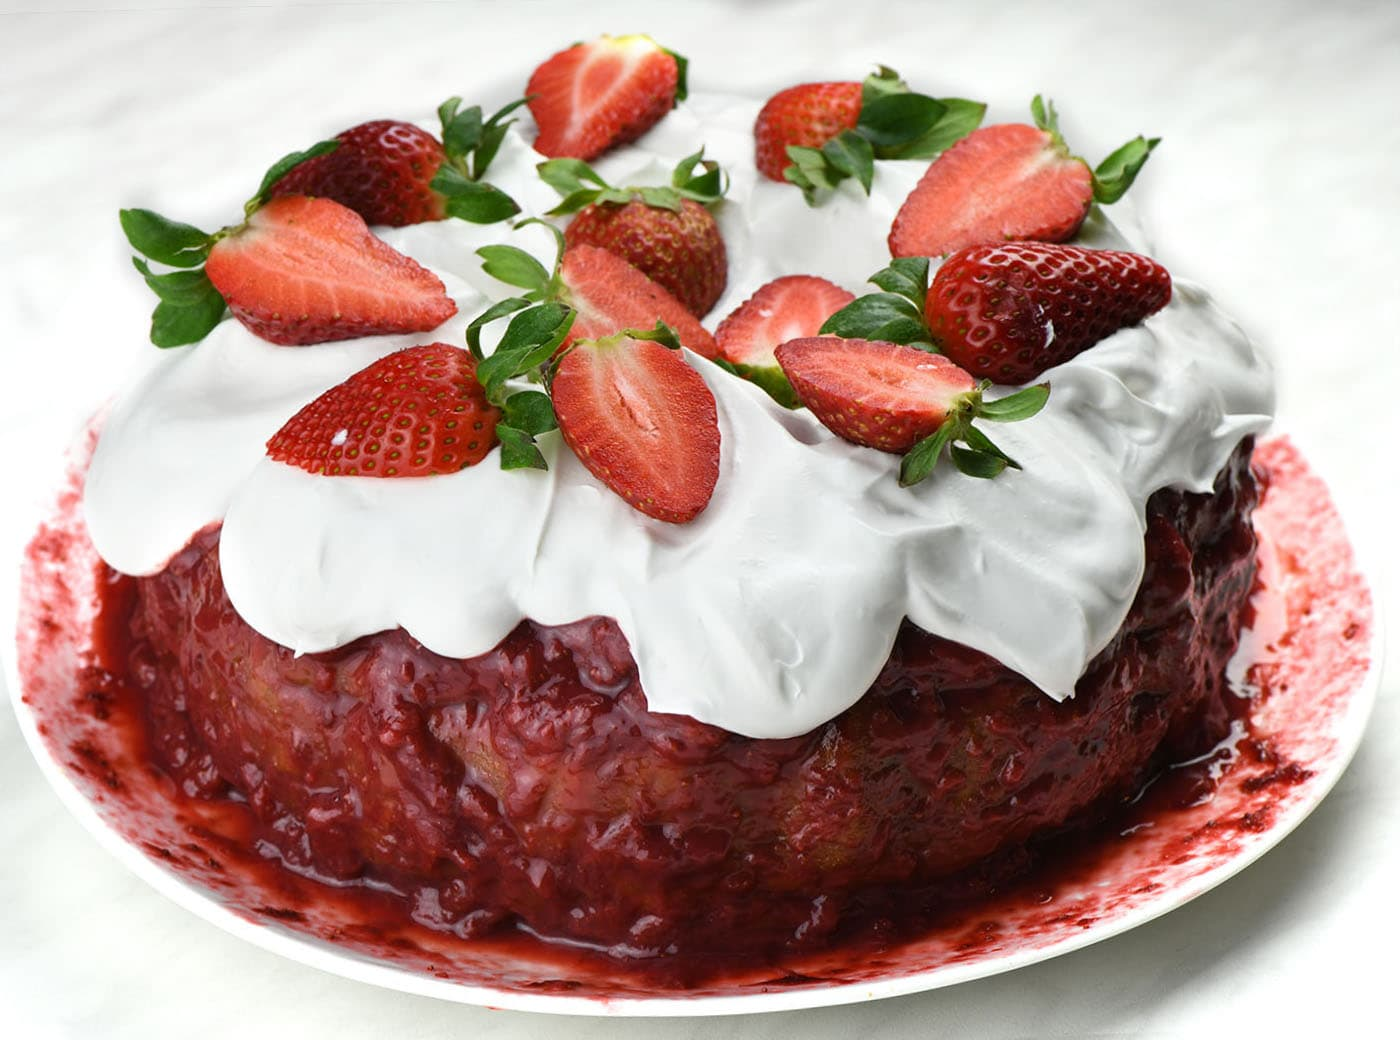 Whole Strawberry Bundt Cake on a white plate.